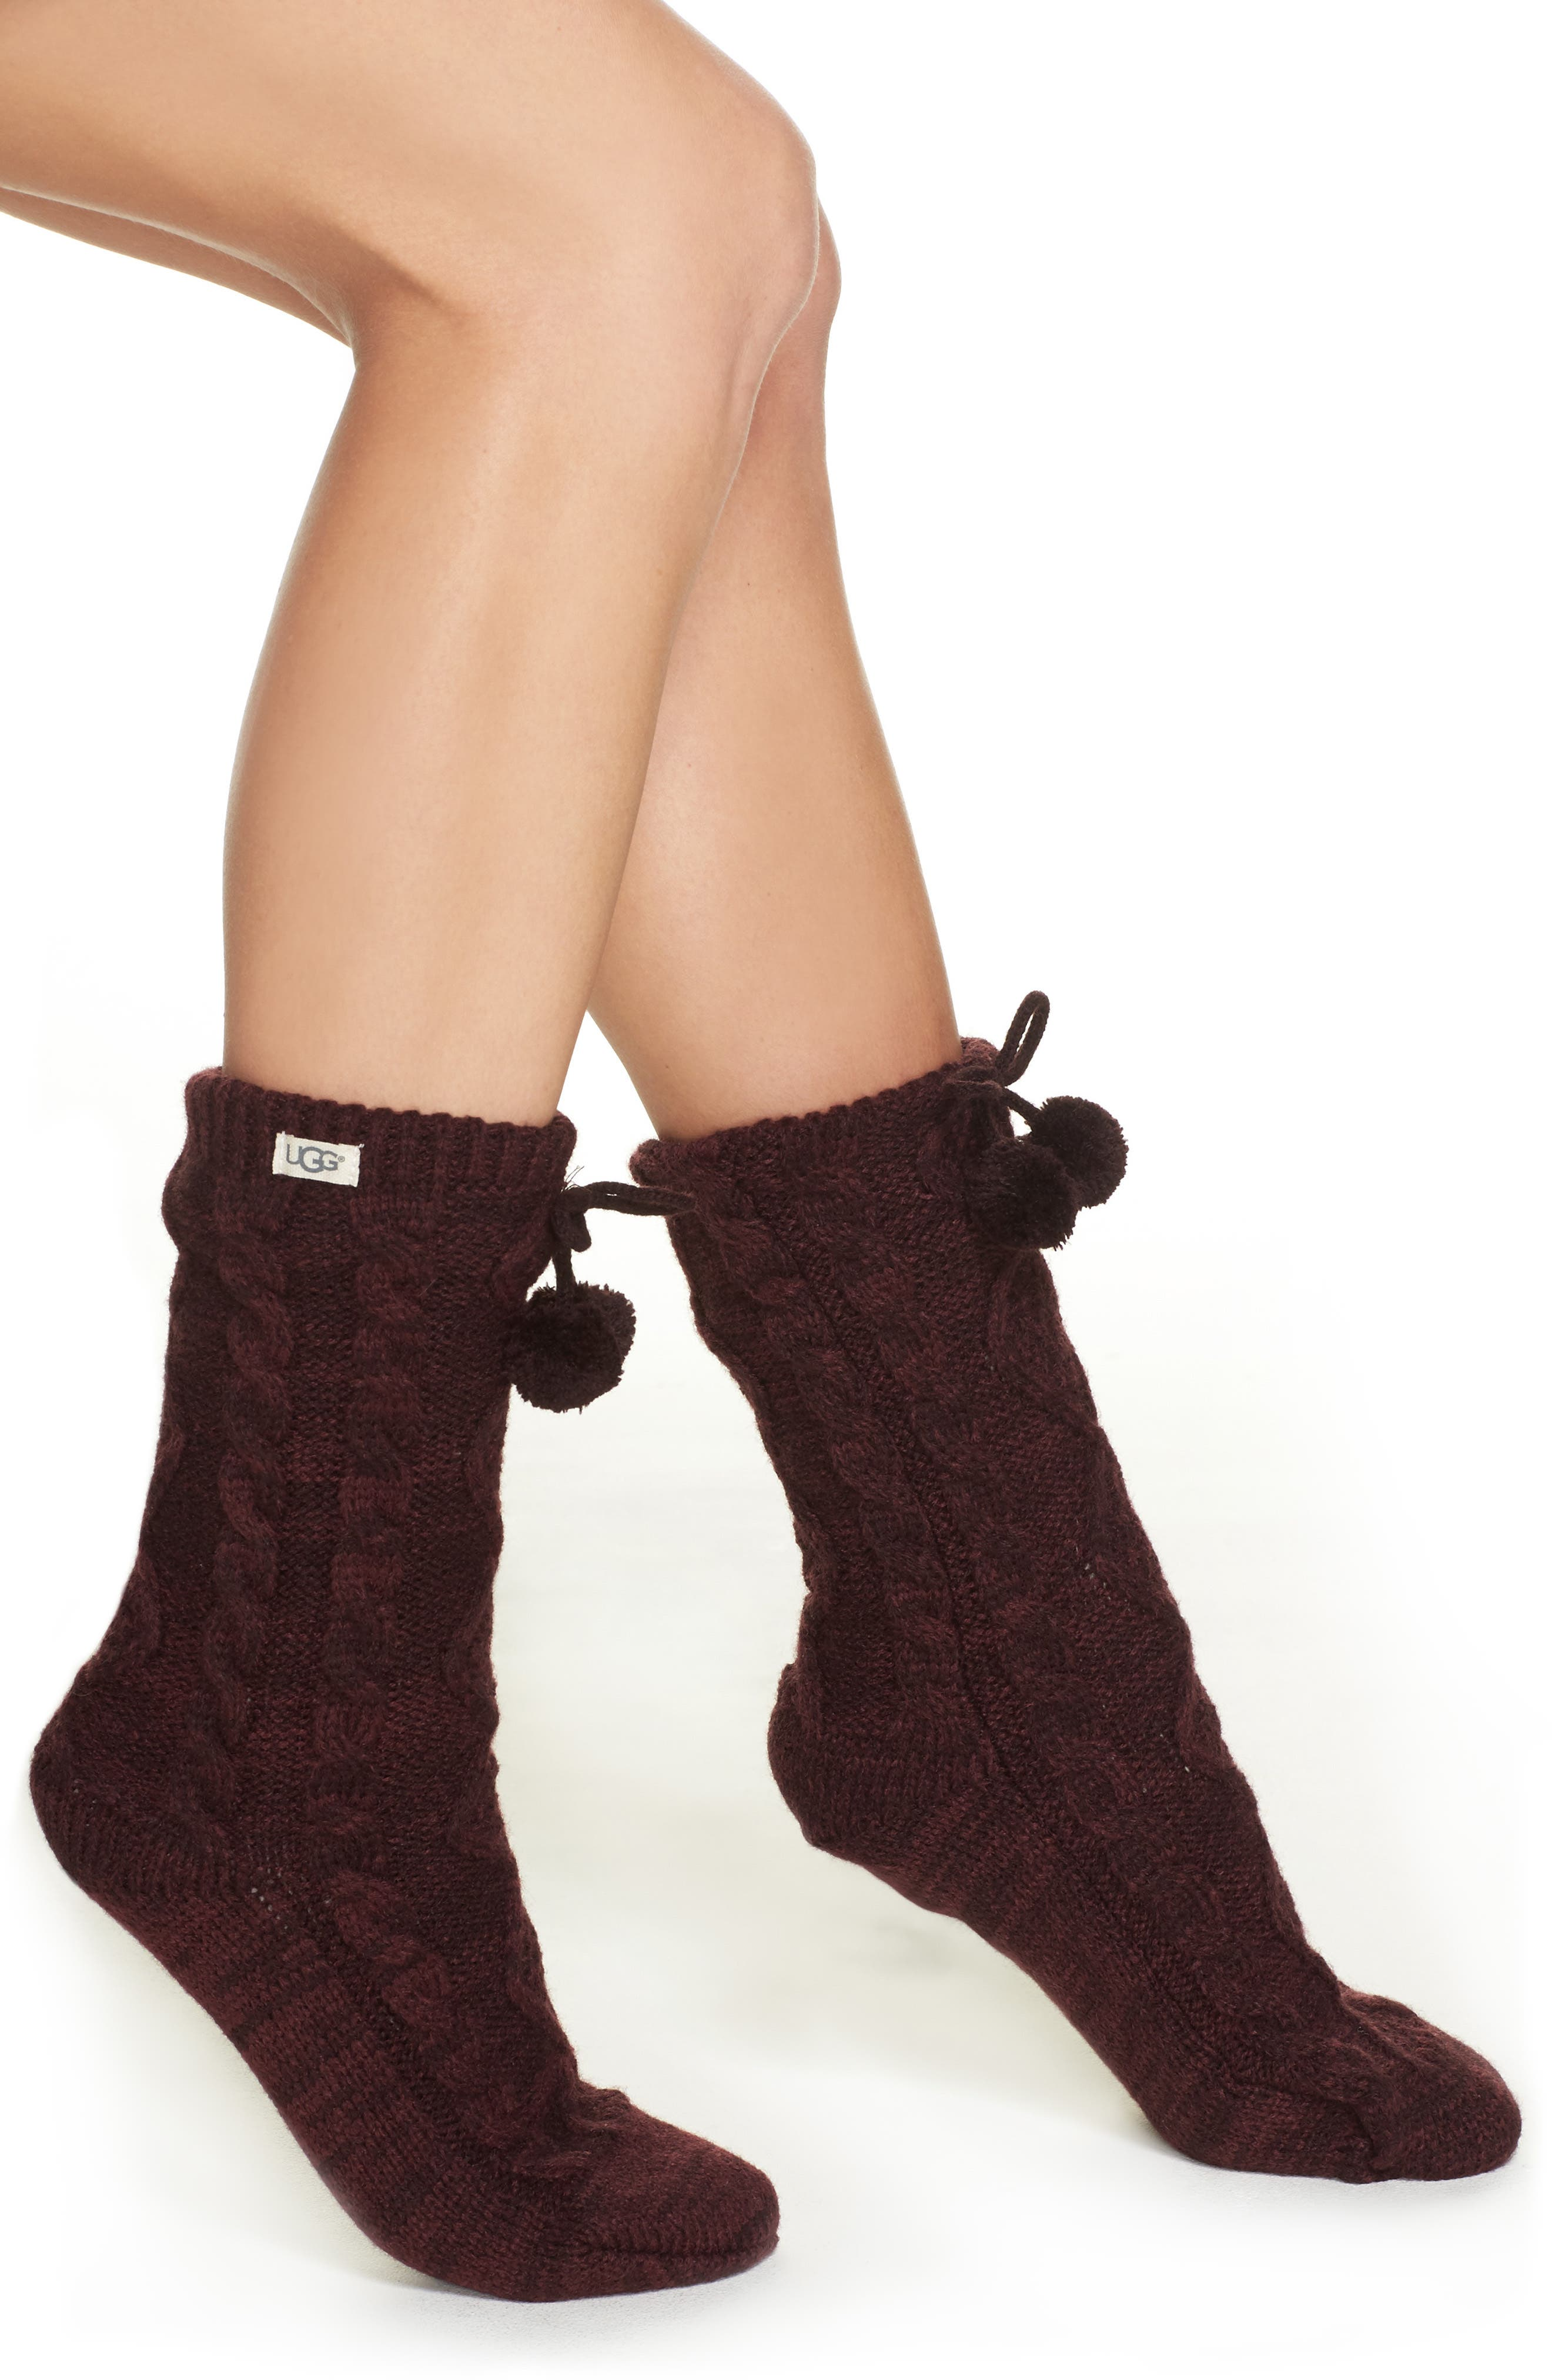 Chunky cable-knit yarn textures the exterior of these cozy crew socks enhanced by fuzzy pompom ties and plush fleece lining. Style Name: UGG Pompom Fleece Lined Socks. Style Number: 5207947 4. Available in stores.